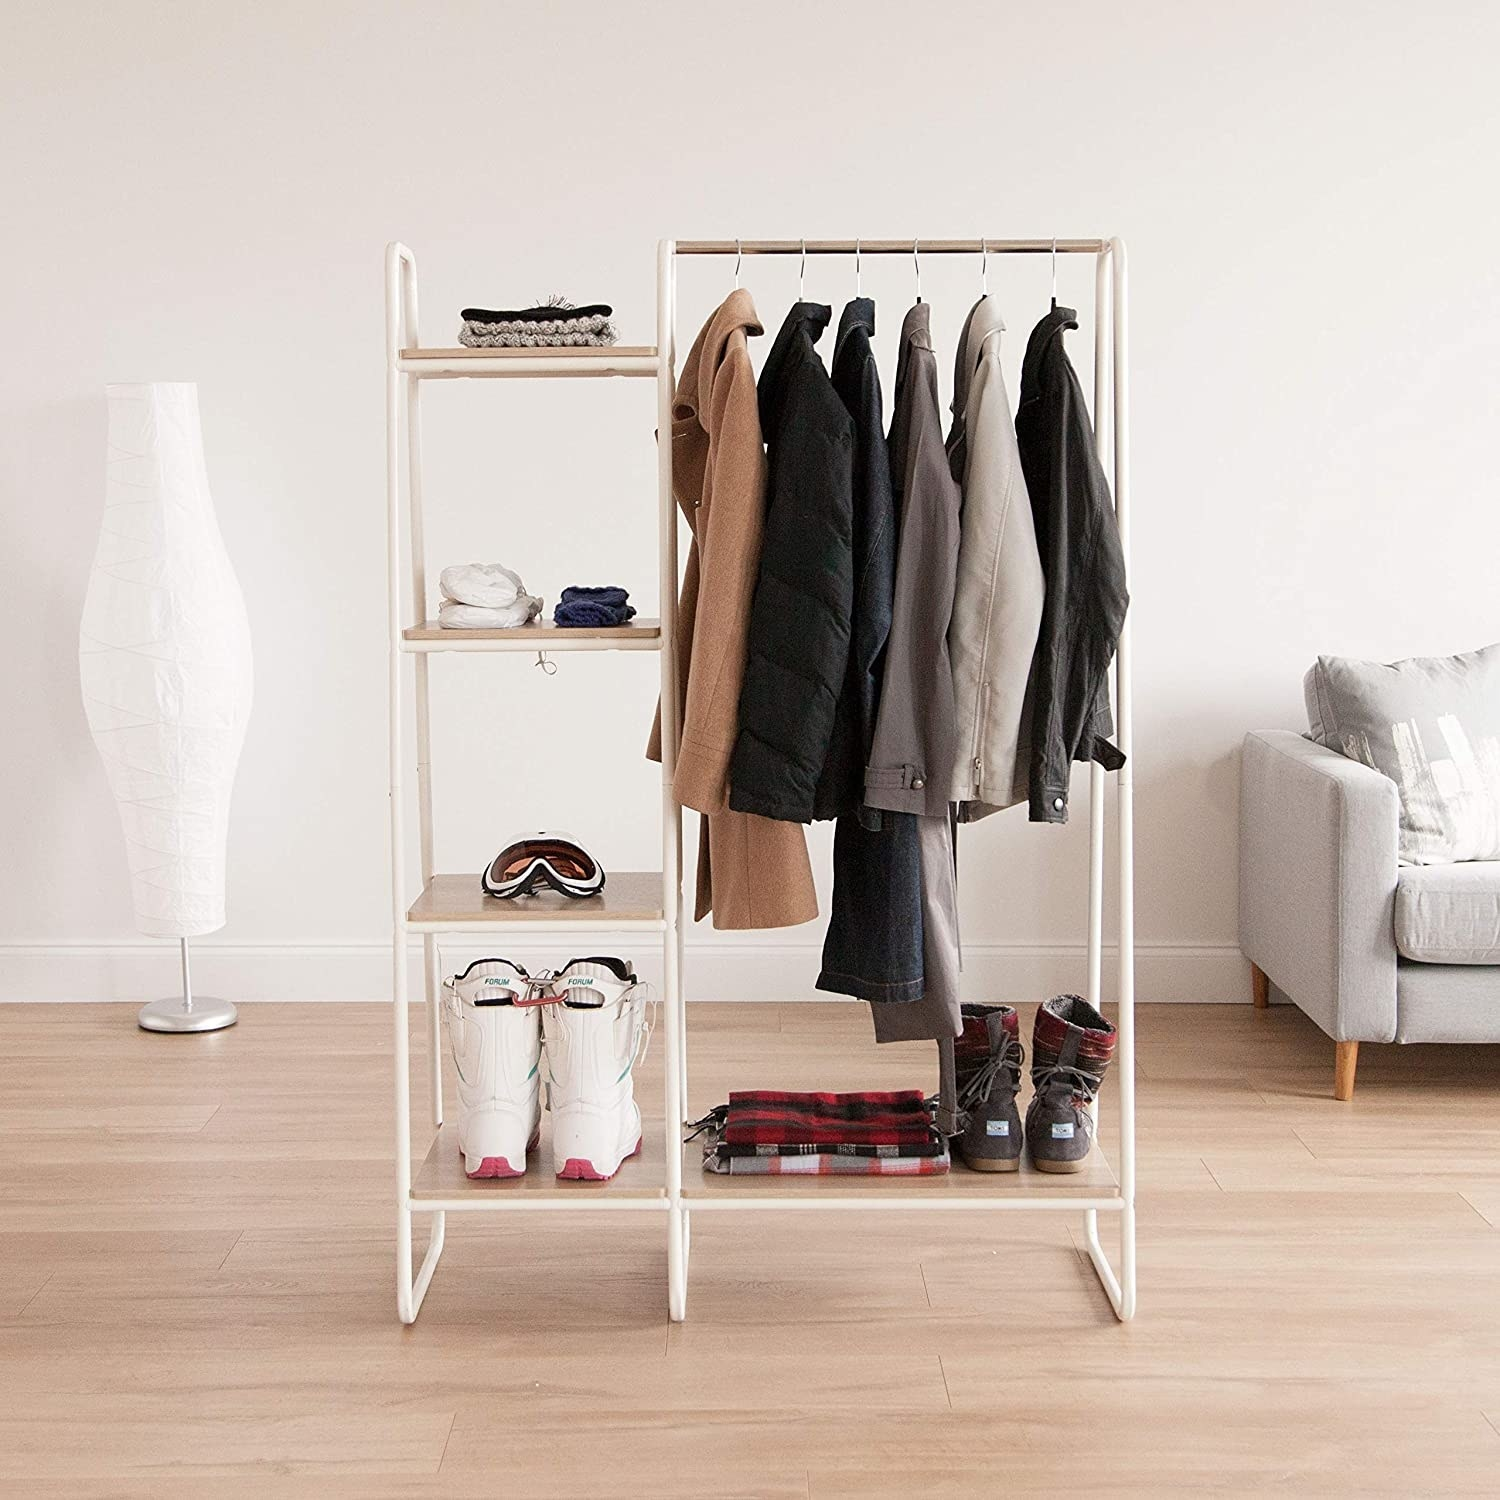 The clothing rack, which also has a three-tier shelf attached to it with shoes and accessories on it